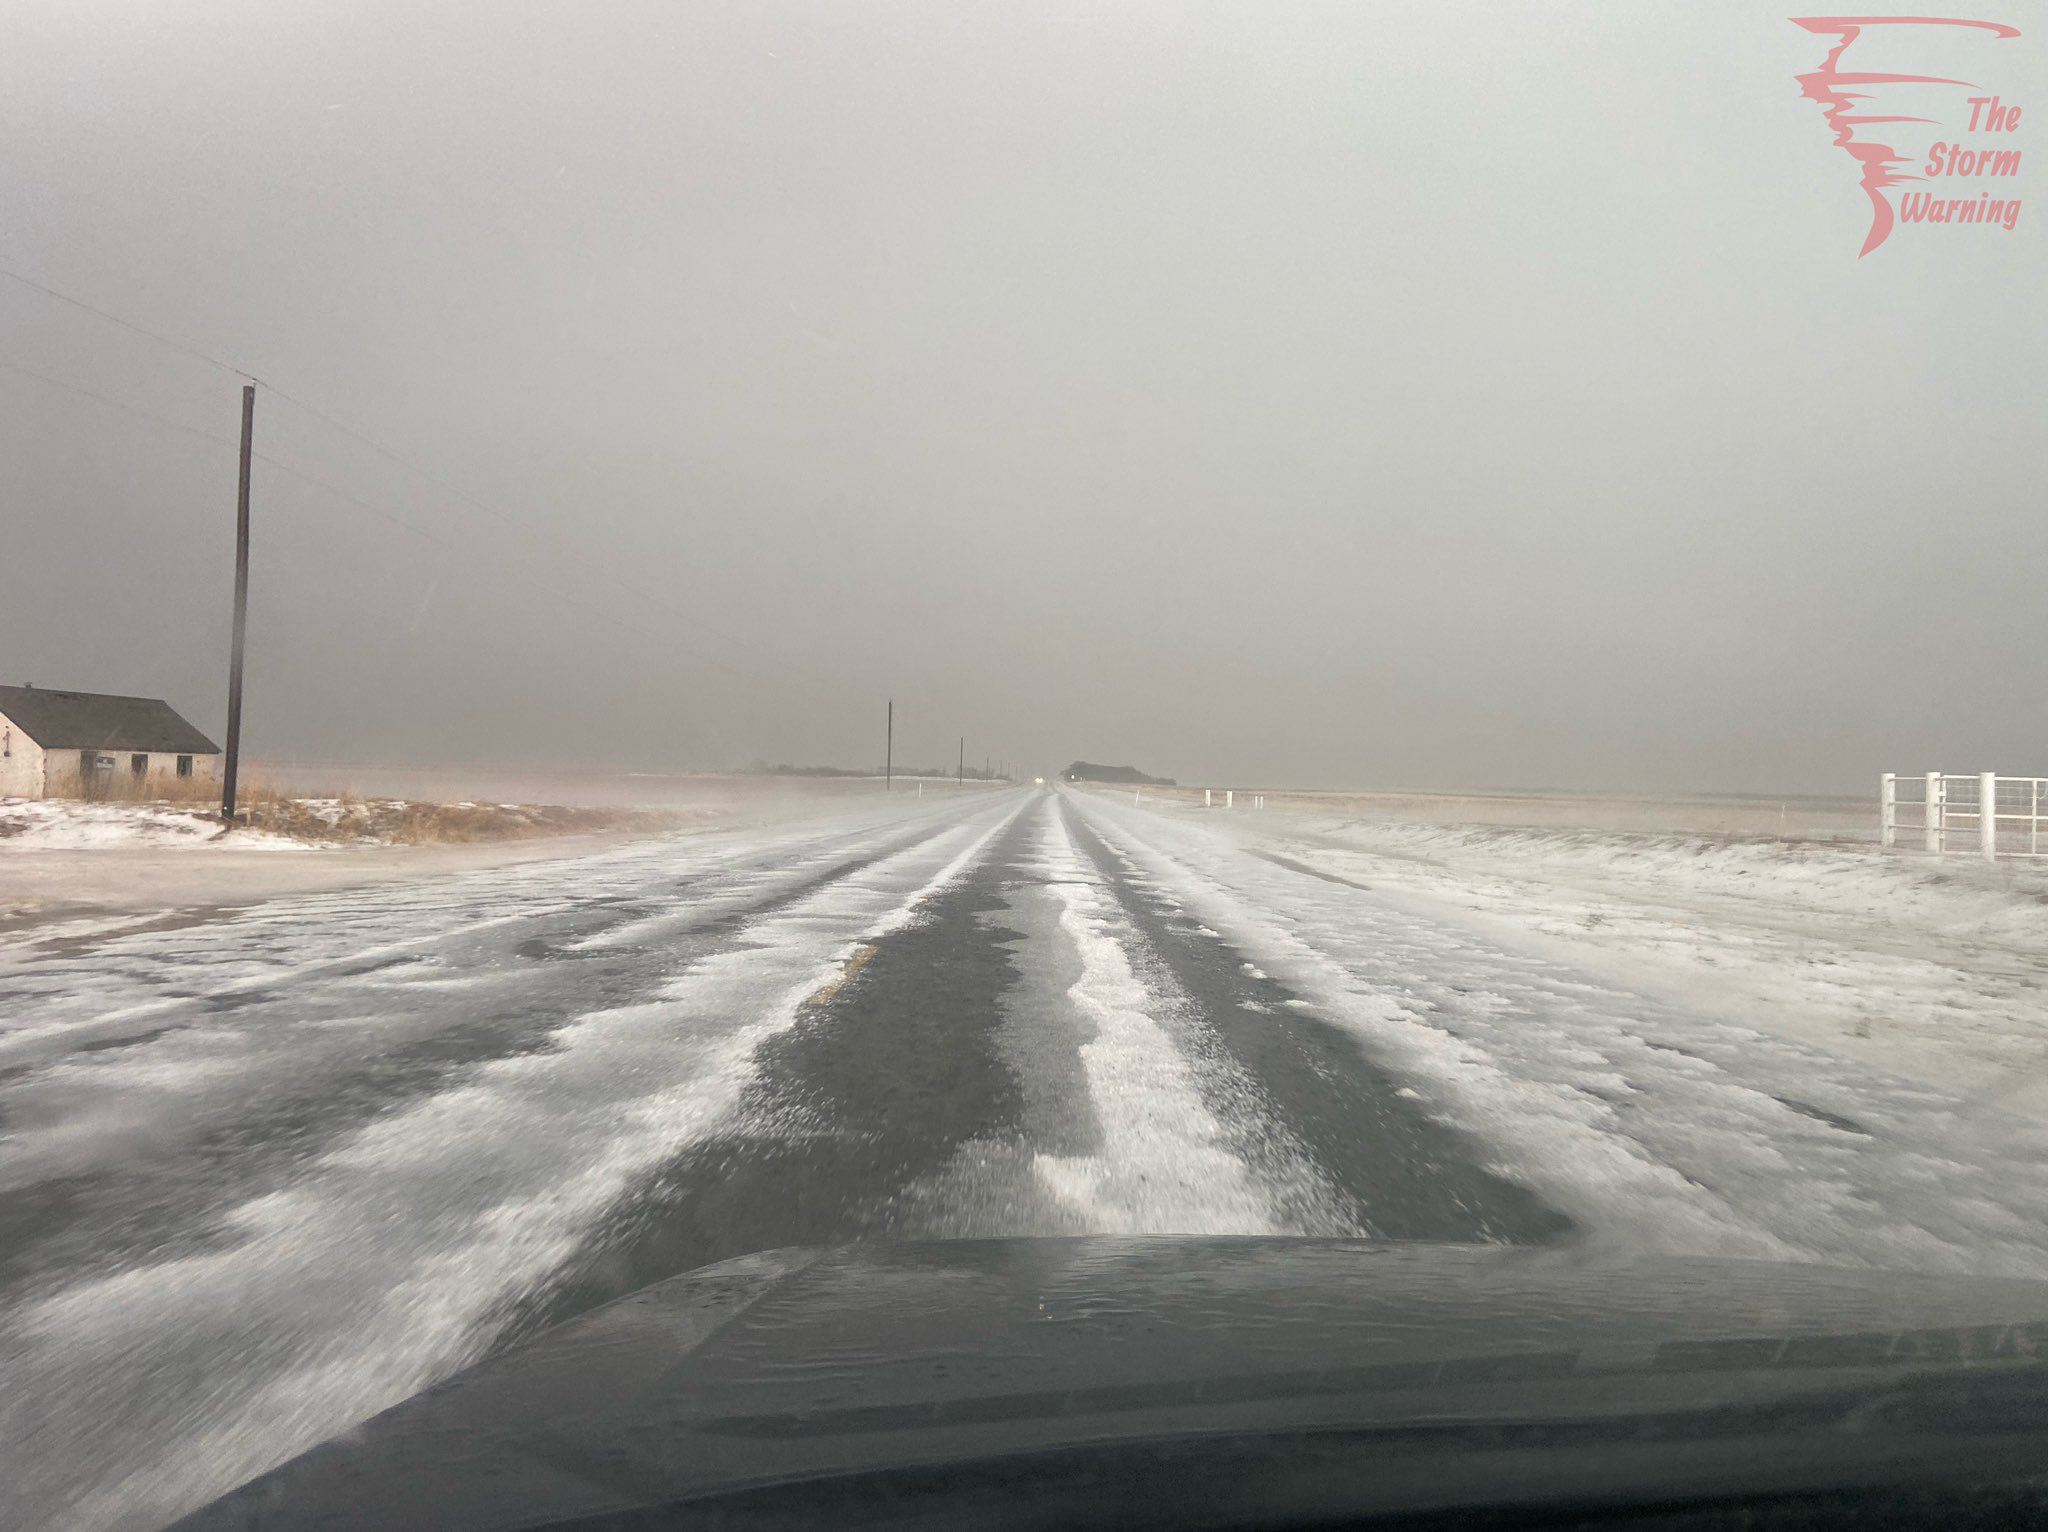 Hail covered roadway just east of Brownfield on Monday afternoon (3 May 2021). The image is courtesy of The Storm warning (@TheStorm Warnin1 on Twitter).